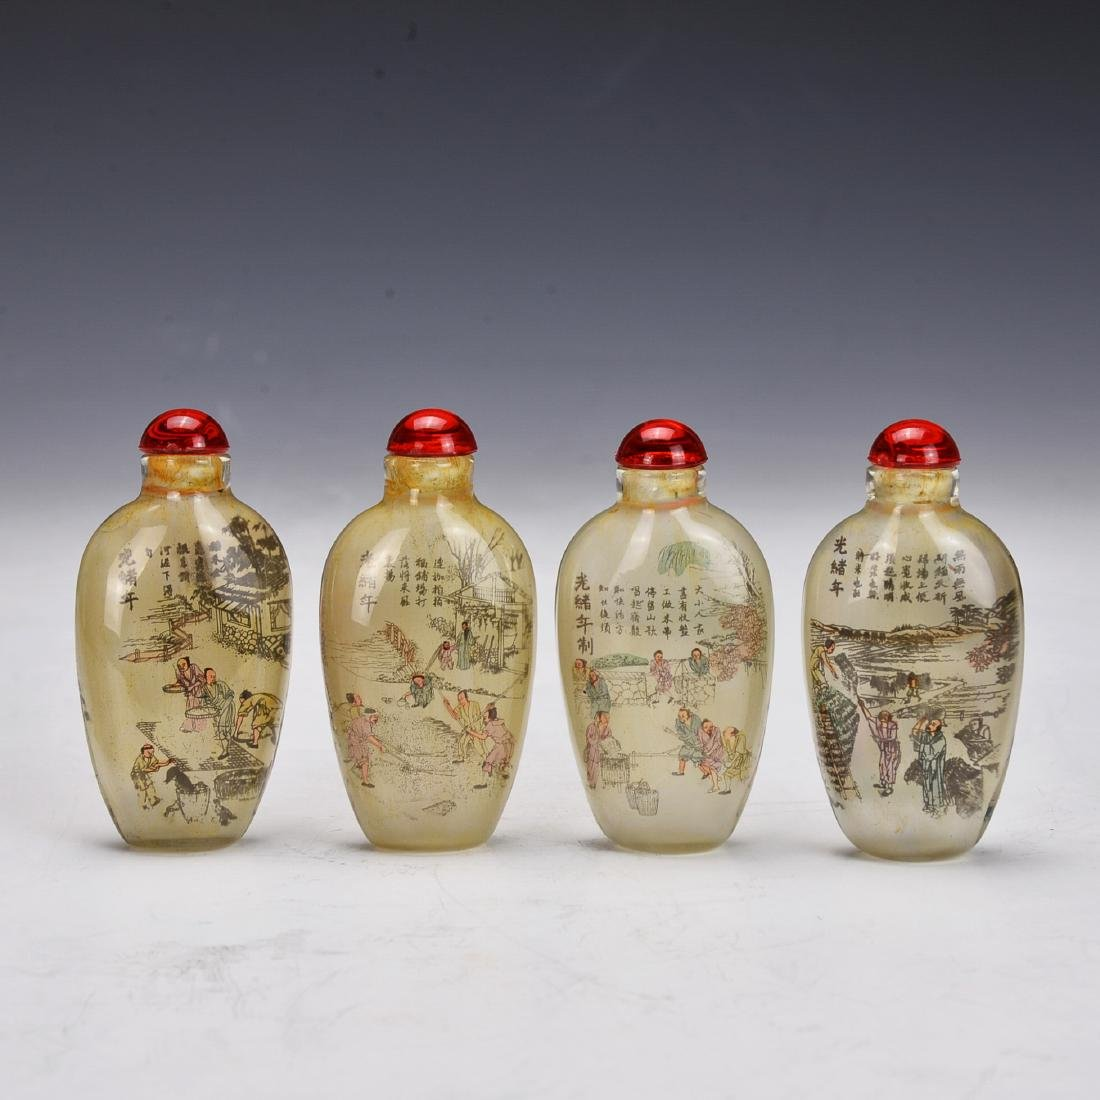 4 Pieces Chinese Inversion Painting Snuff Bottle